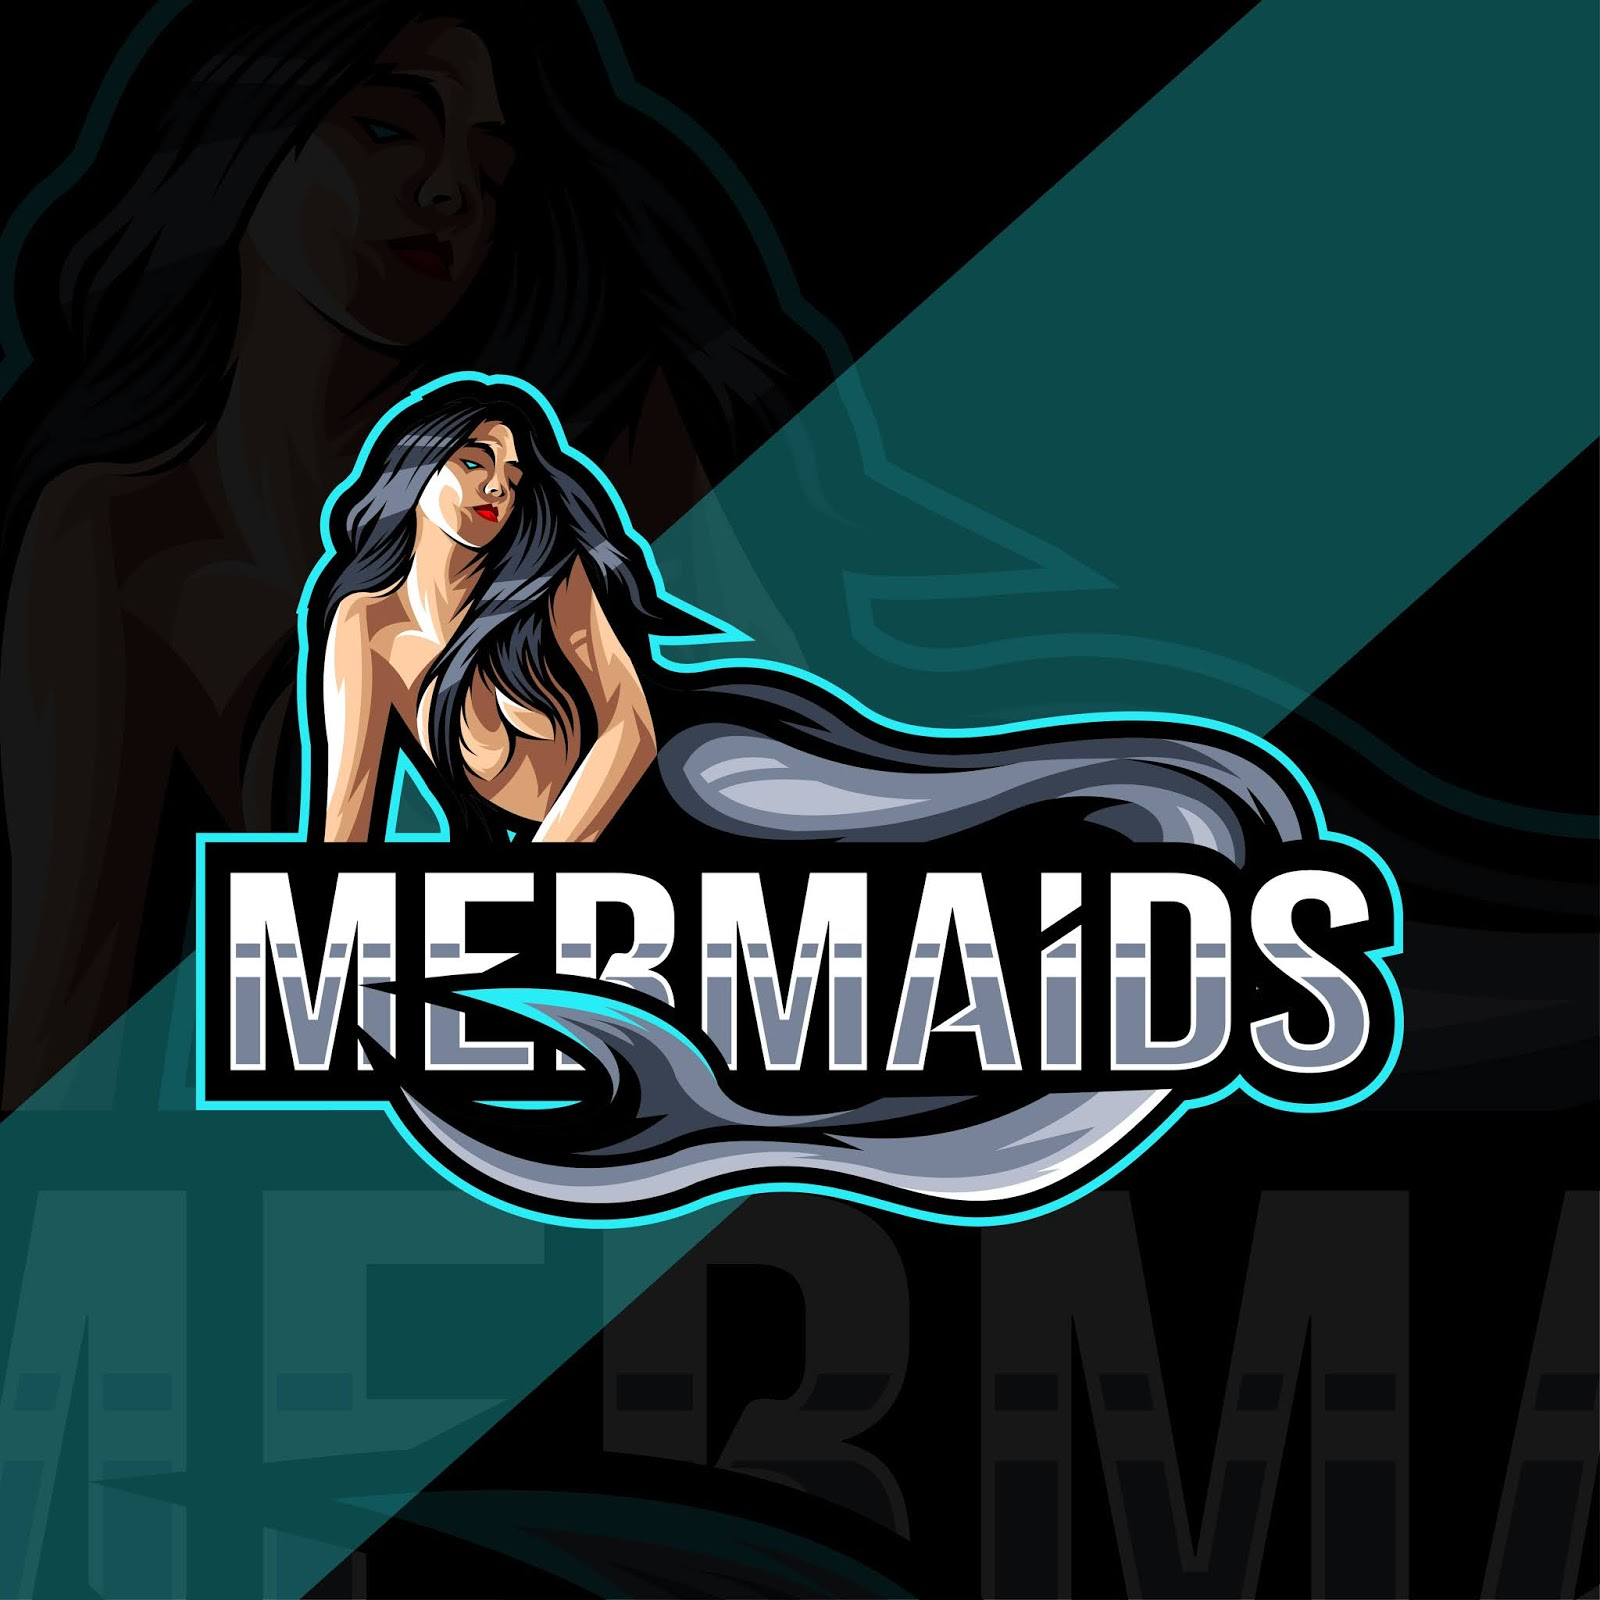 Mermaids Mascot Logo Esport Template Free Download Vector CDR, AI, EPS and PNG Formats